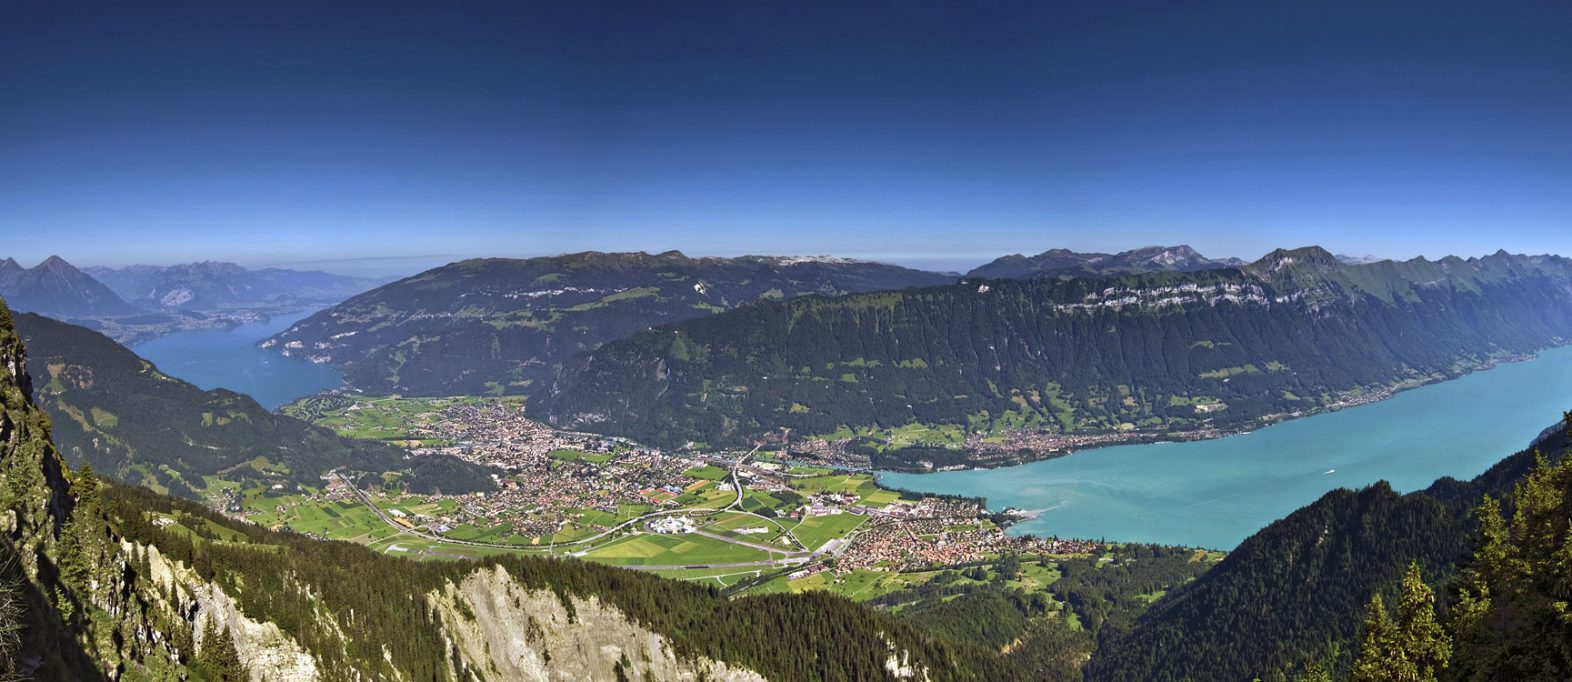 Interlaken Schweiz (credit: Adobe Stock ID: 31676288)